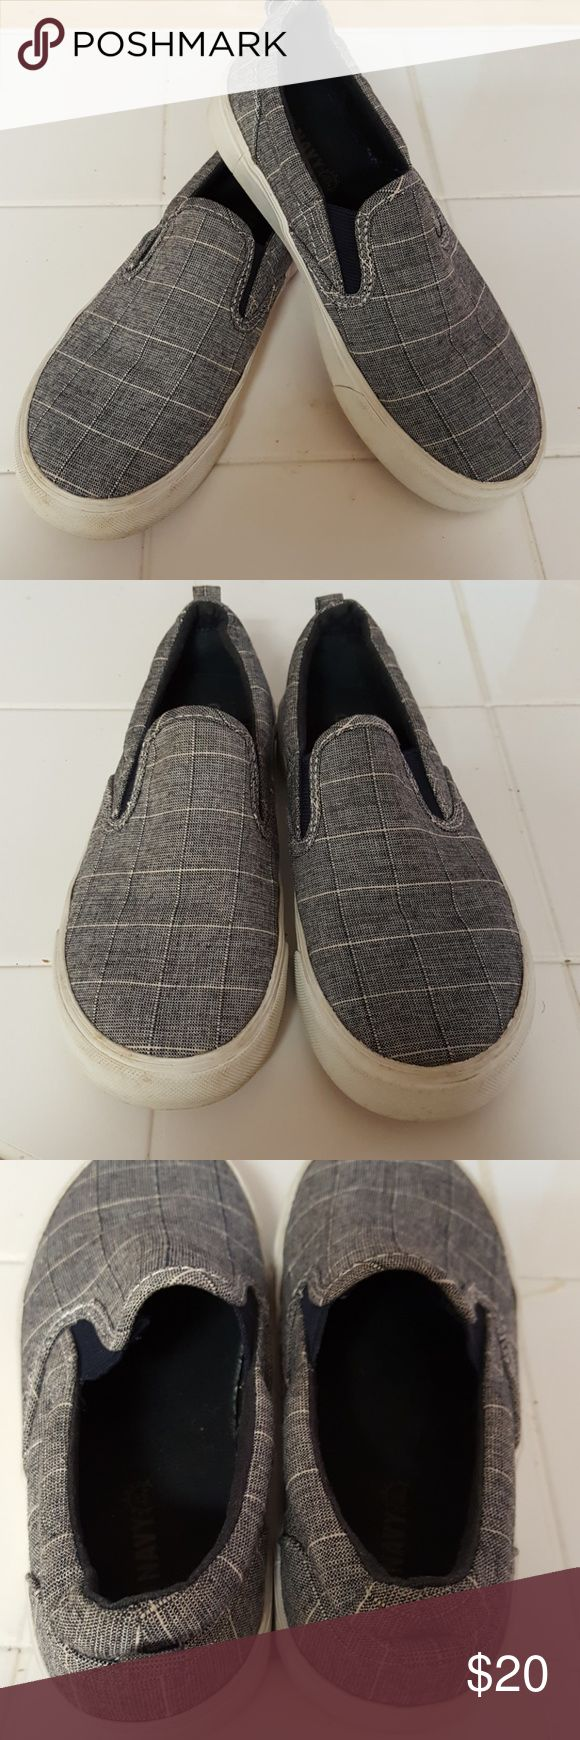 Gently used old navy vans kids size 1 Gently used old navy vans kids size 1 Old Navy Shoes Sneakers